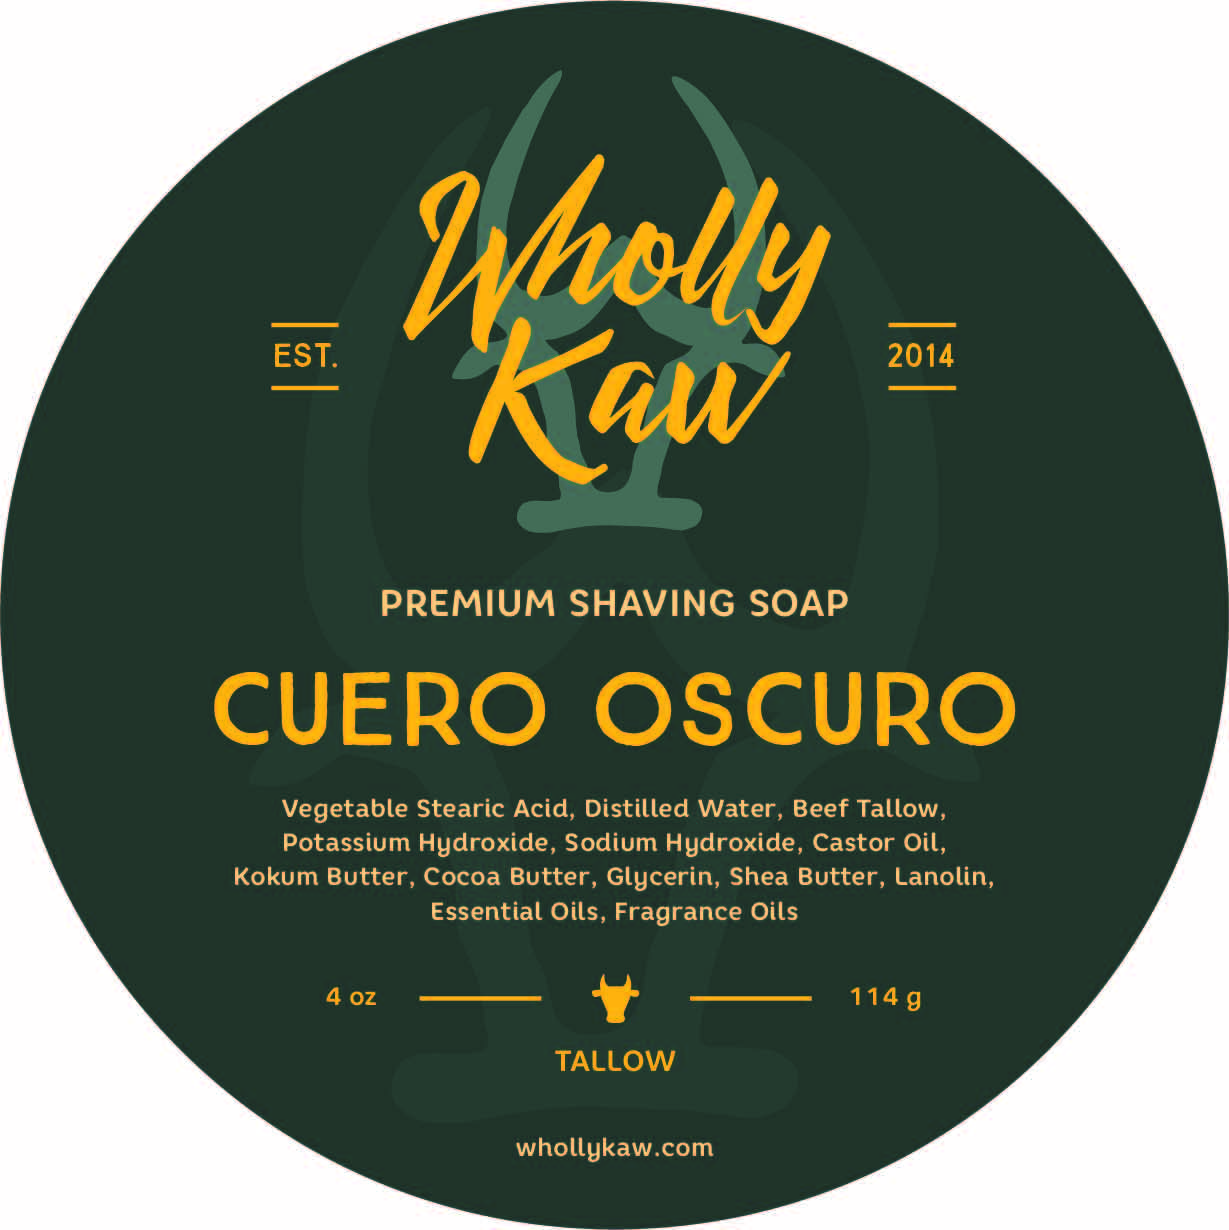 Wholly Kaw - Cuero Oscuro - Soap image